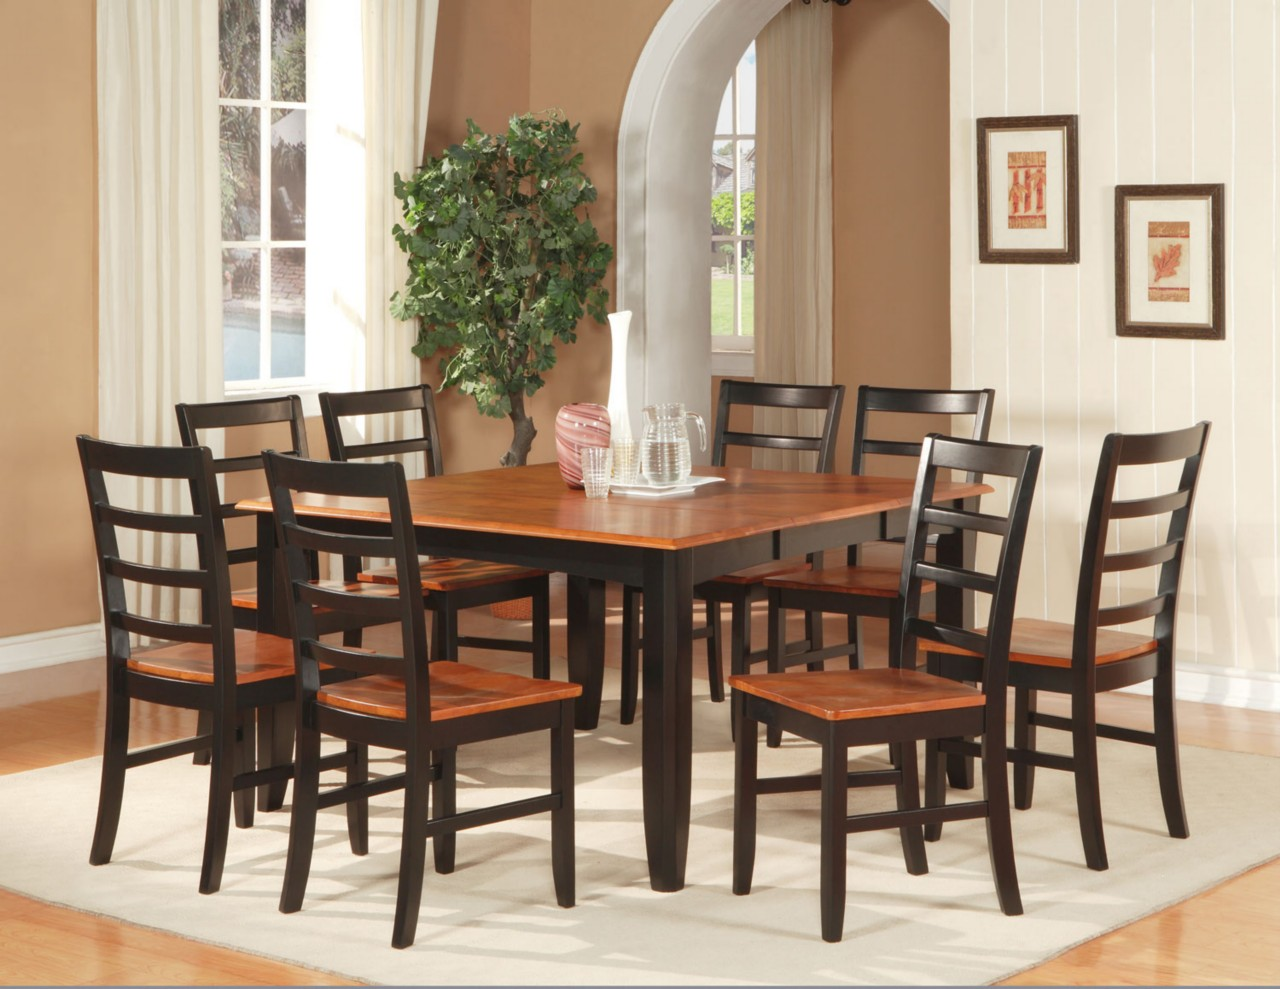 5 pc square dinette kitchen dining table set 4 chairs ebay for Kitchen table set 6 chairs